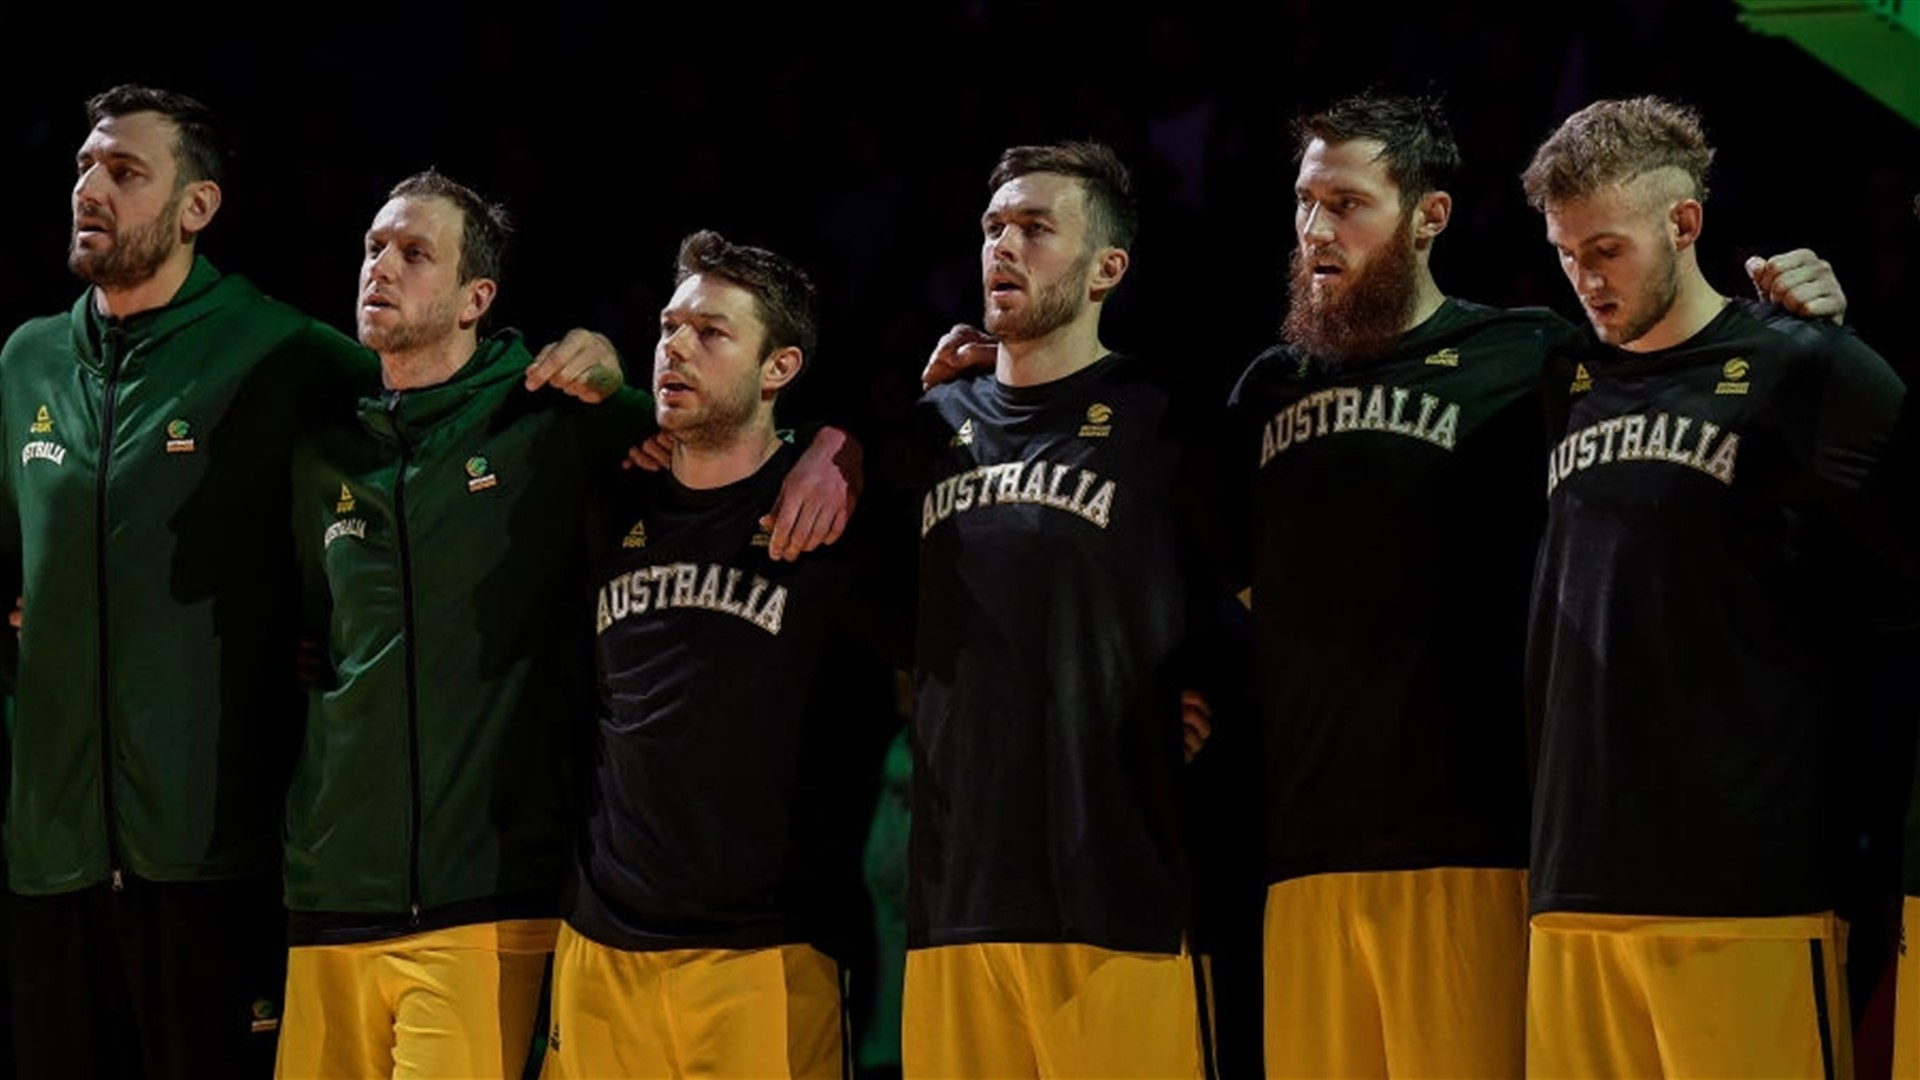 FIBA Basketball World Cup 2019: Three things to watch when the Boomers take on Team USA in Melbourne